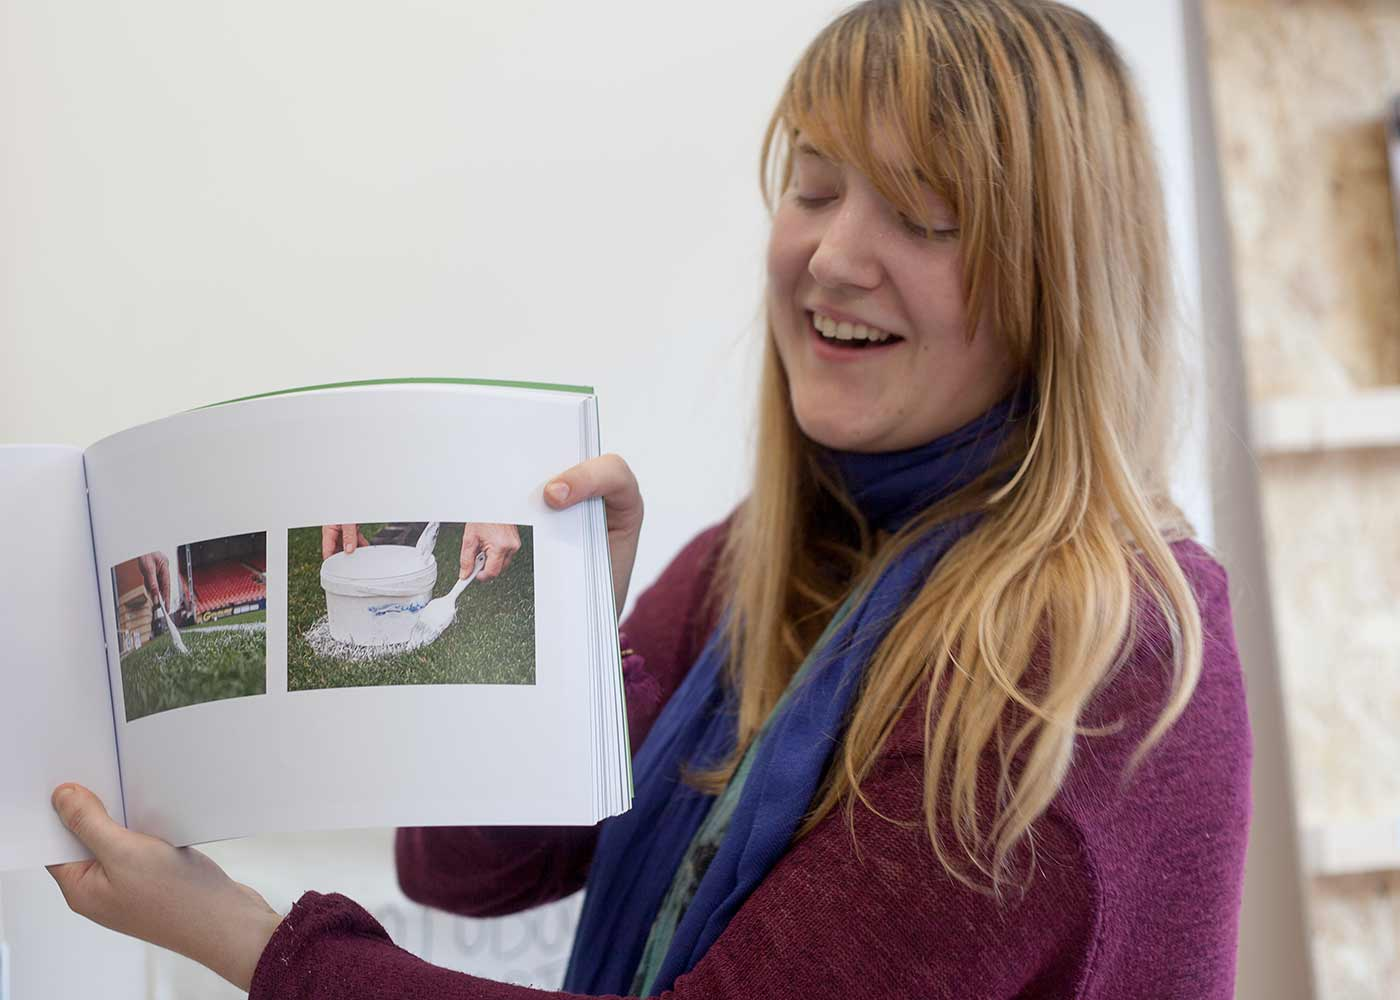 Emily Usher Amy Warwick has just graduated from the BA Photography at the University of East London; Emily presented her graduation photobook THE GROUNDSKEEPER